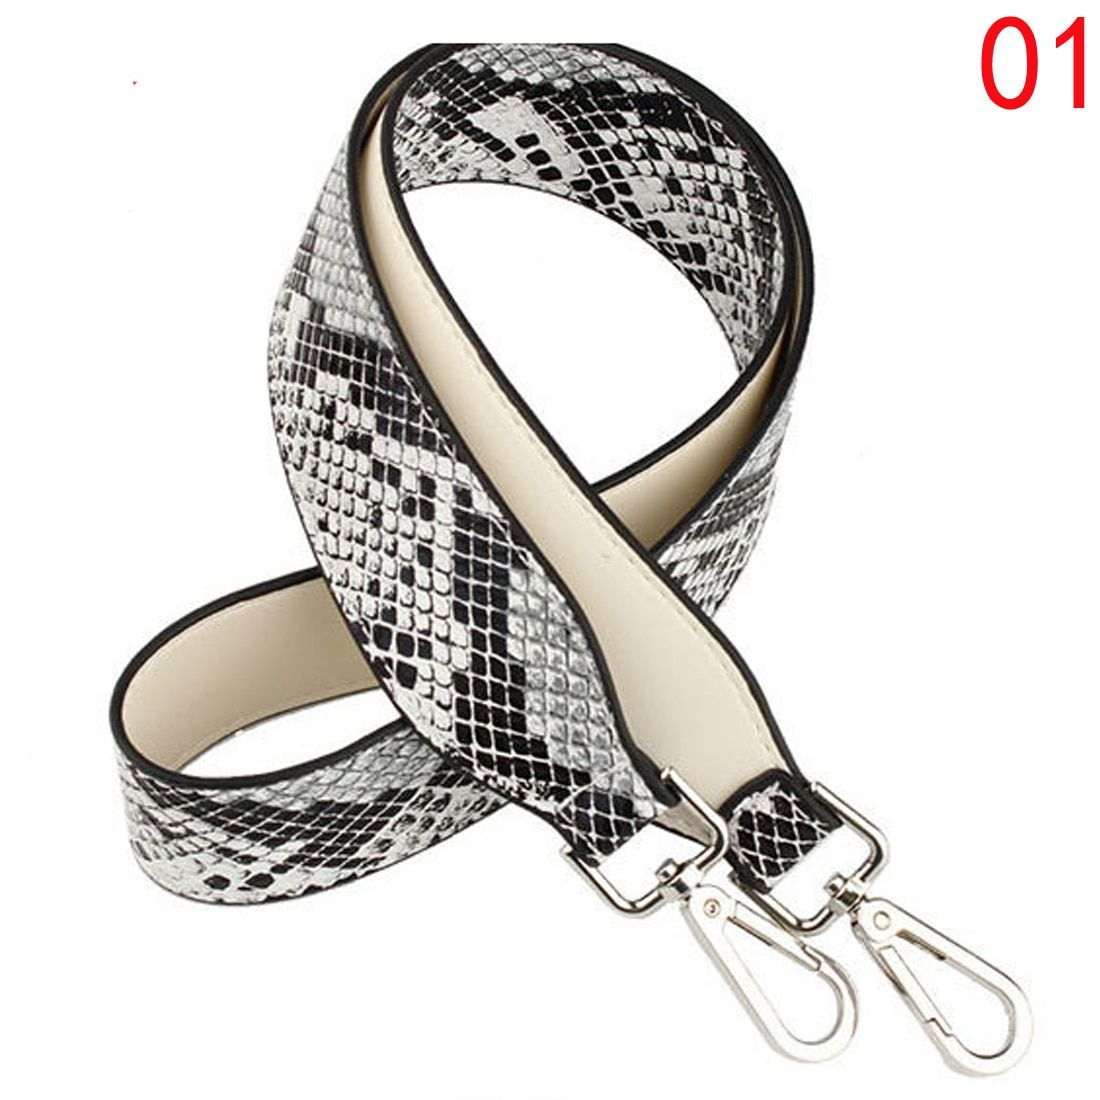 SFG HOUSE FASHION Snakeskin Leather Handle Strap Casual Wide Women Bag Straps Lengthened Replacement Shoulder Bag Straps